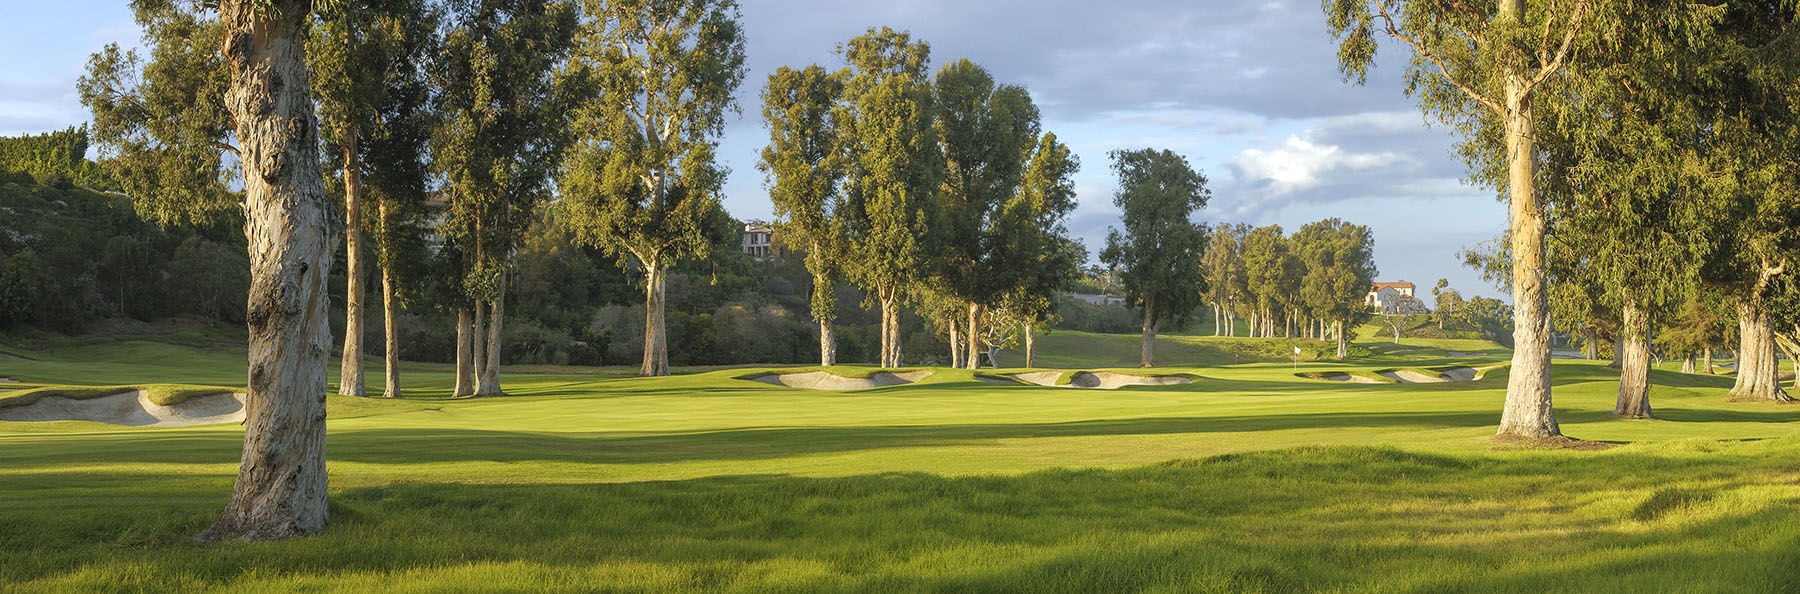 Golf Course Image - Riviera Country Club No. 17